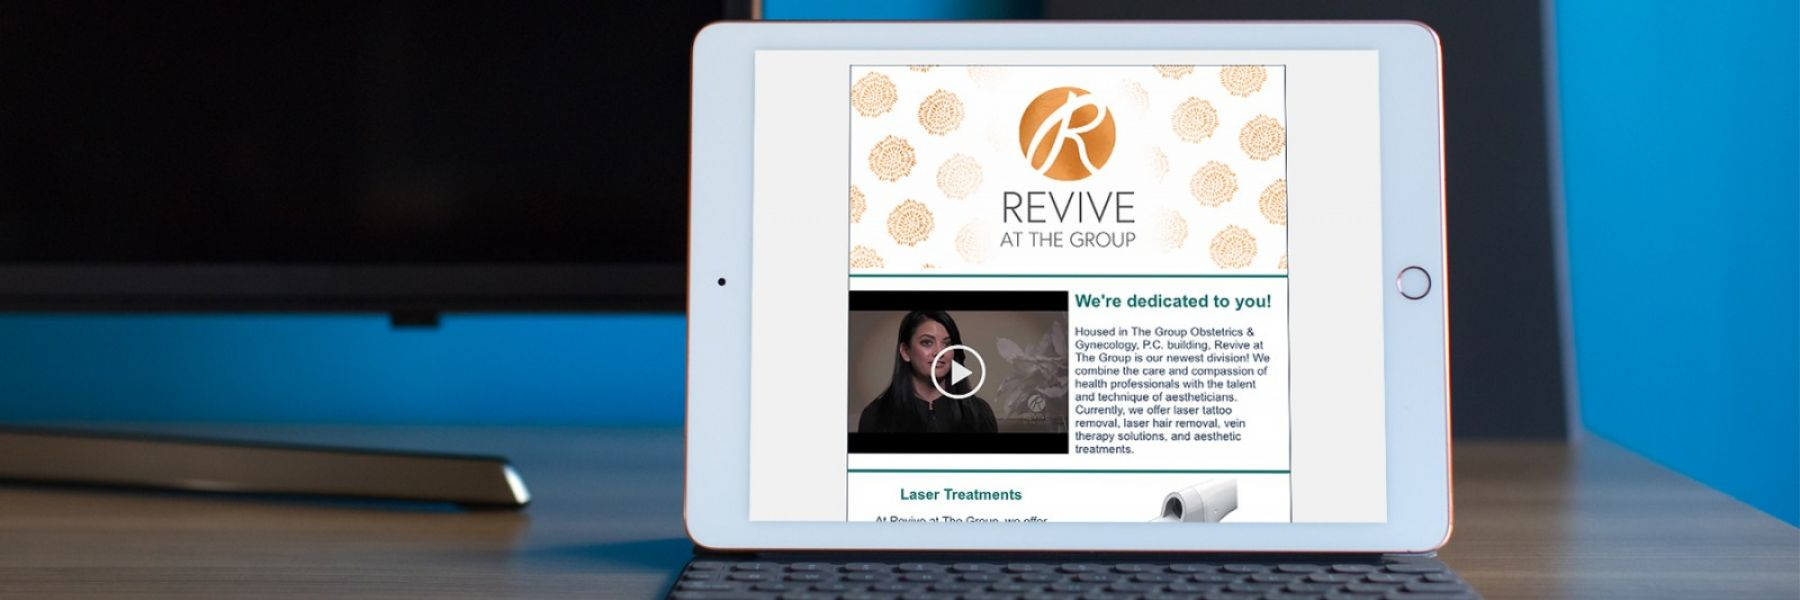 Email sent from Revive at The Group to their clients displayed horizontally on a tablet